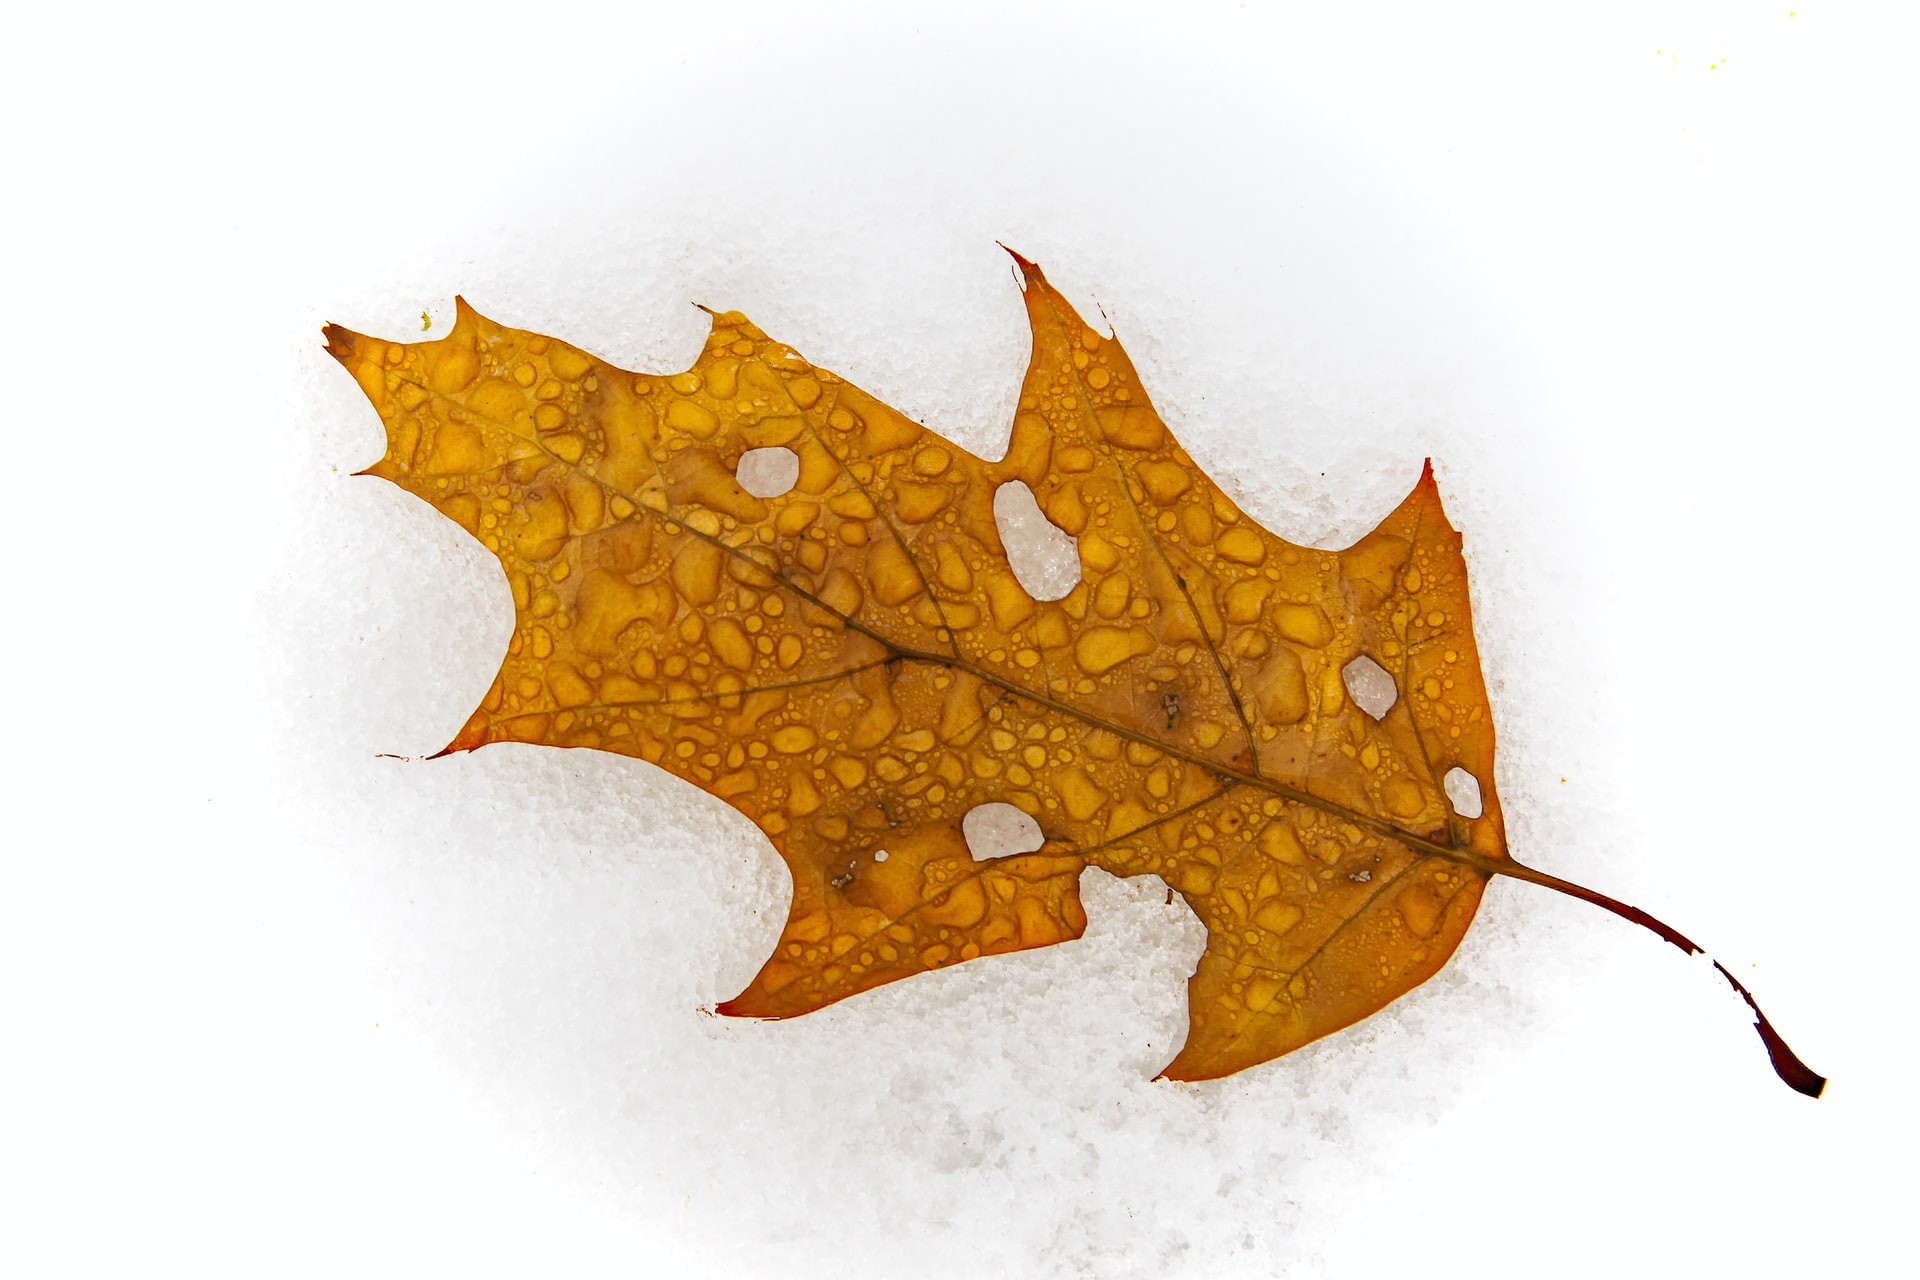 Dry leaf in the snow